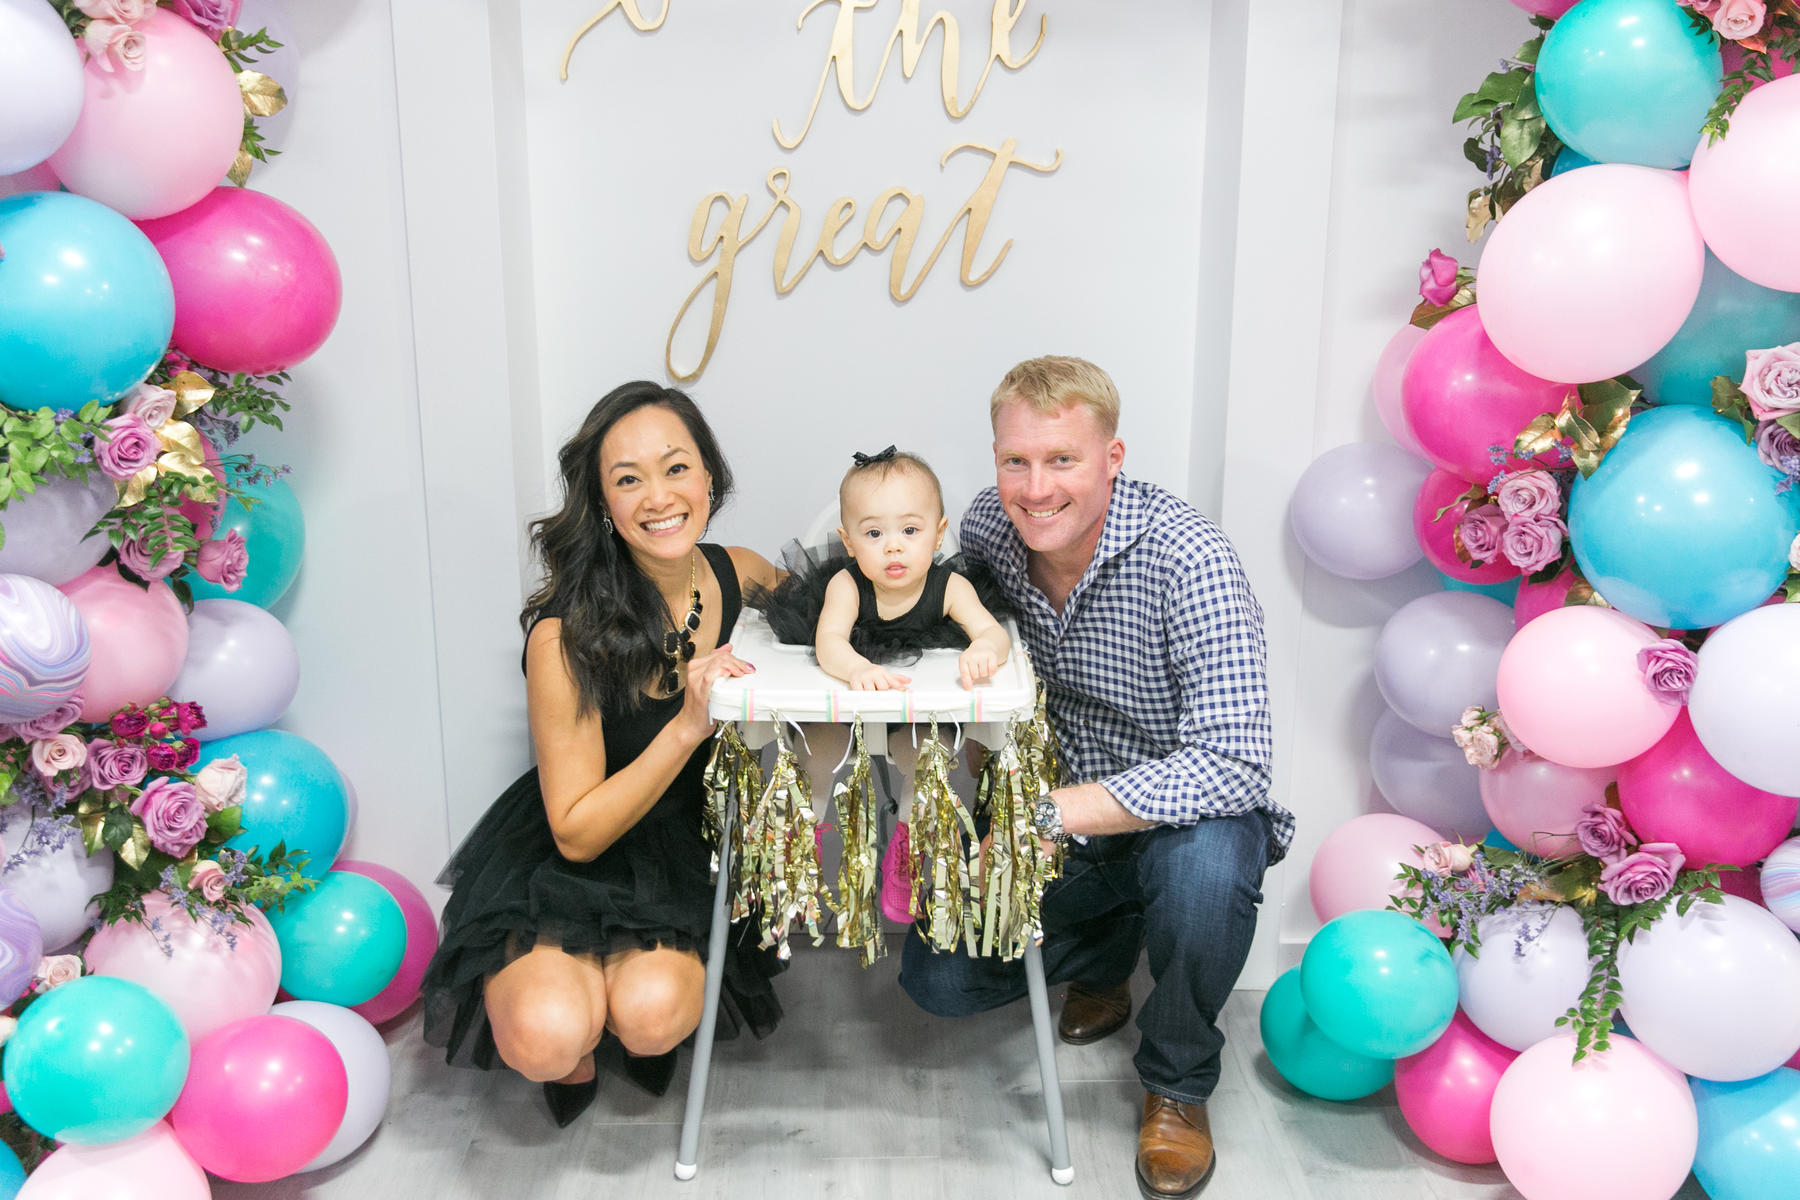 Birthday Party Ideas - Parents.com